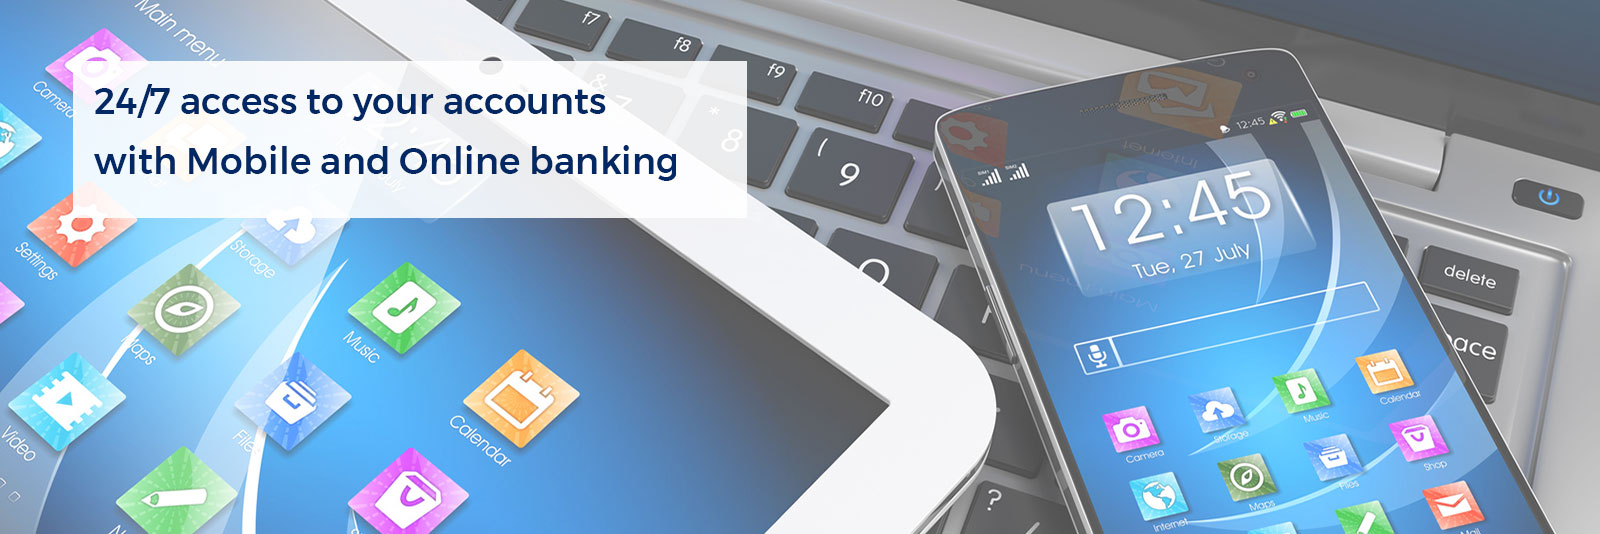 24/7 access to your accounts with Mobile and Online Banking